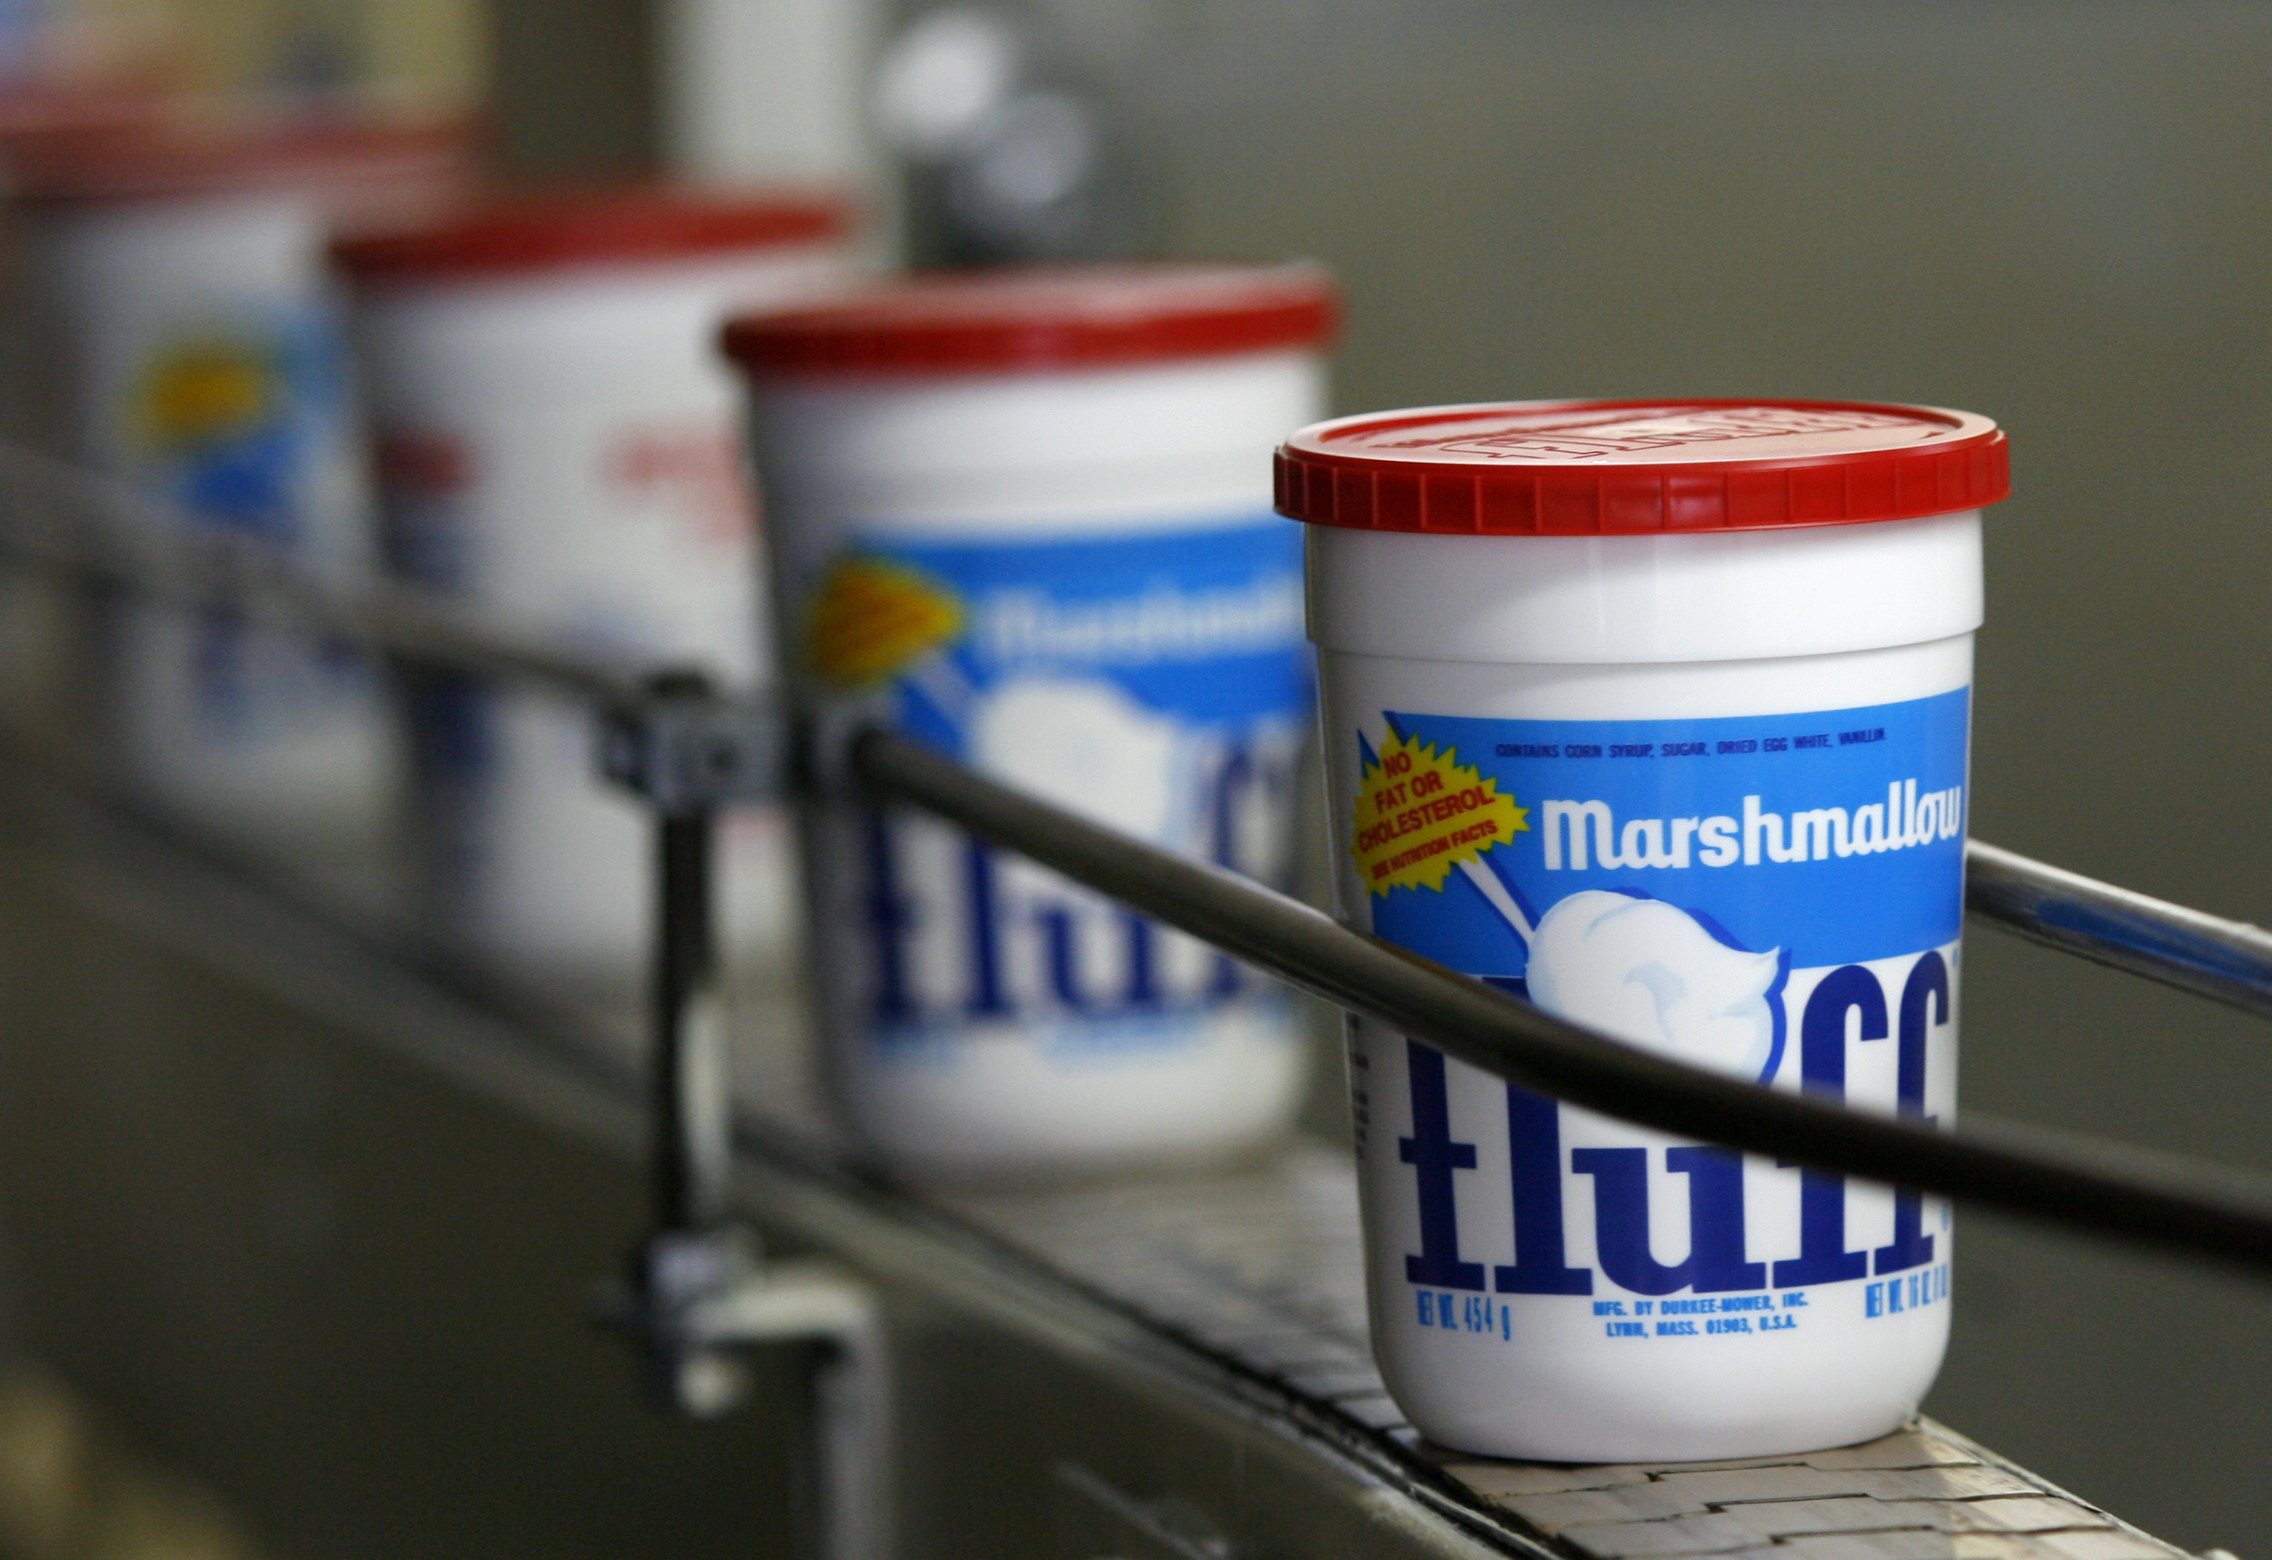 Marshmallow Fluff containers. Photo by Joanne Rathe / The Boston Globe via Getty Images.